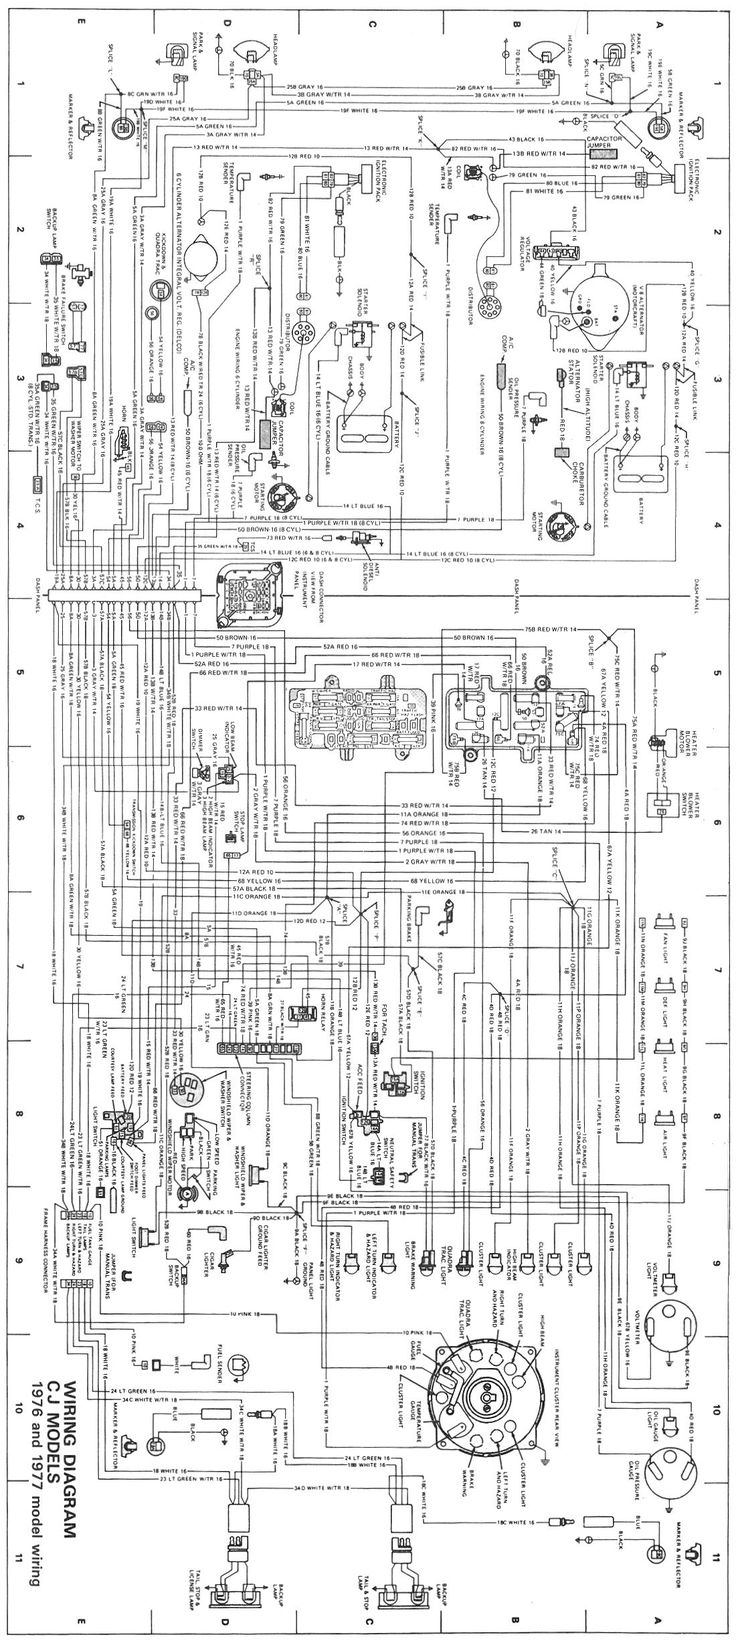 8d25ded6e3673519e155875e09844e5e jeep cj jeep stuff 74 best 1976 jeep cj5 ideas, parts etc images on pinterest jeeps 1981 jeep cj5 wiring diagram at n-0.co